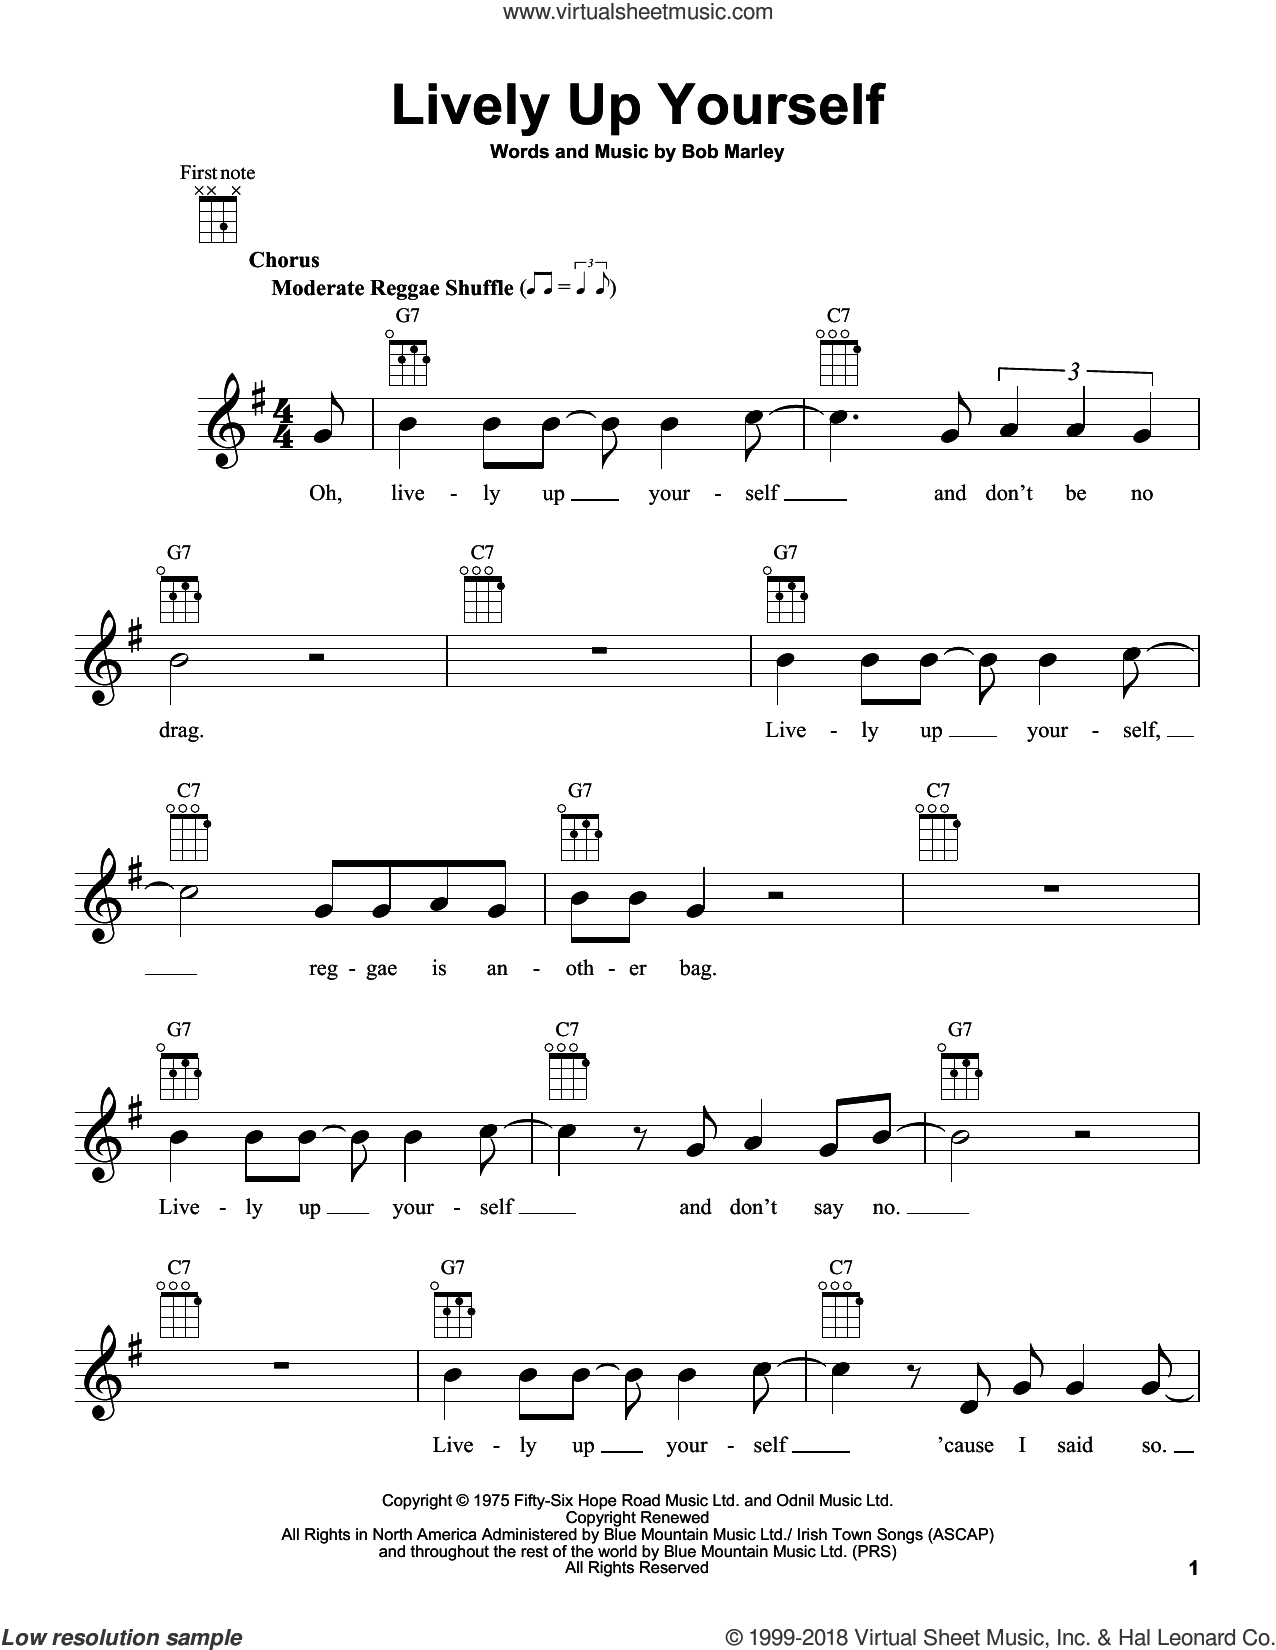 Lively Up Yourself sheet music for ukulele by Bob Marley, intermediate skill level